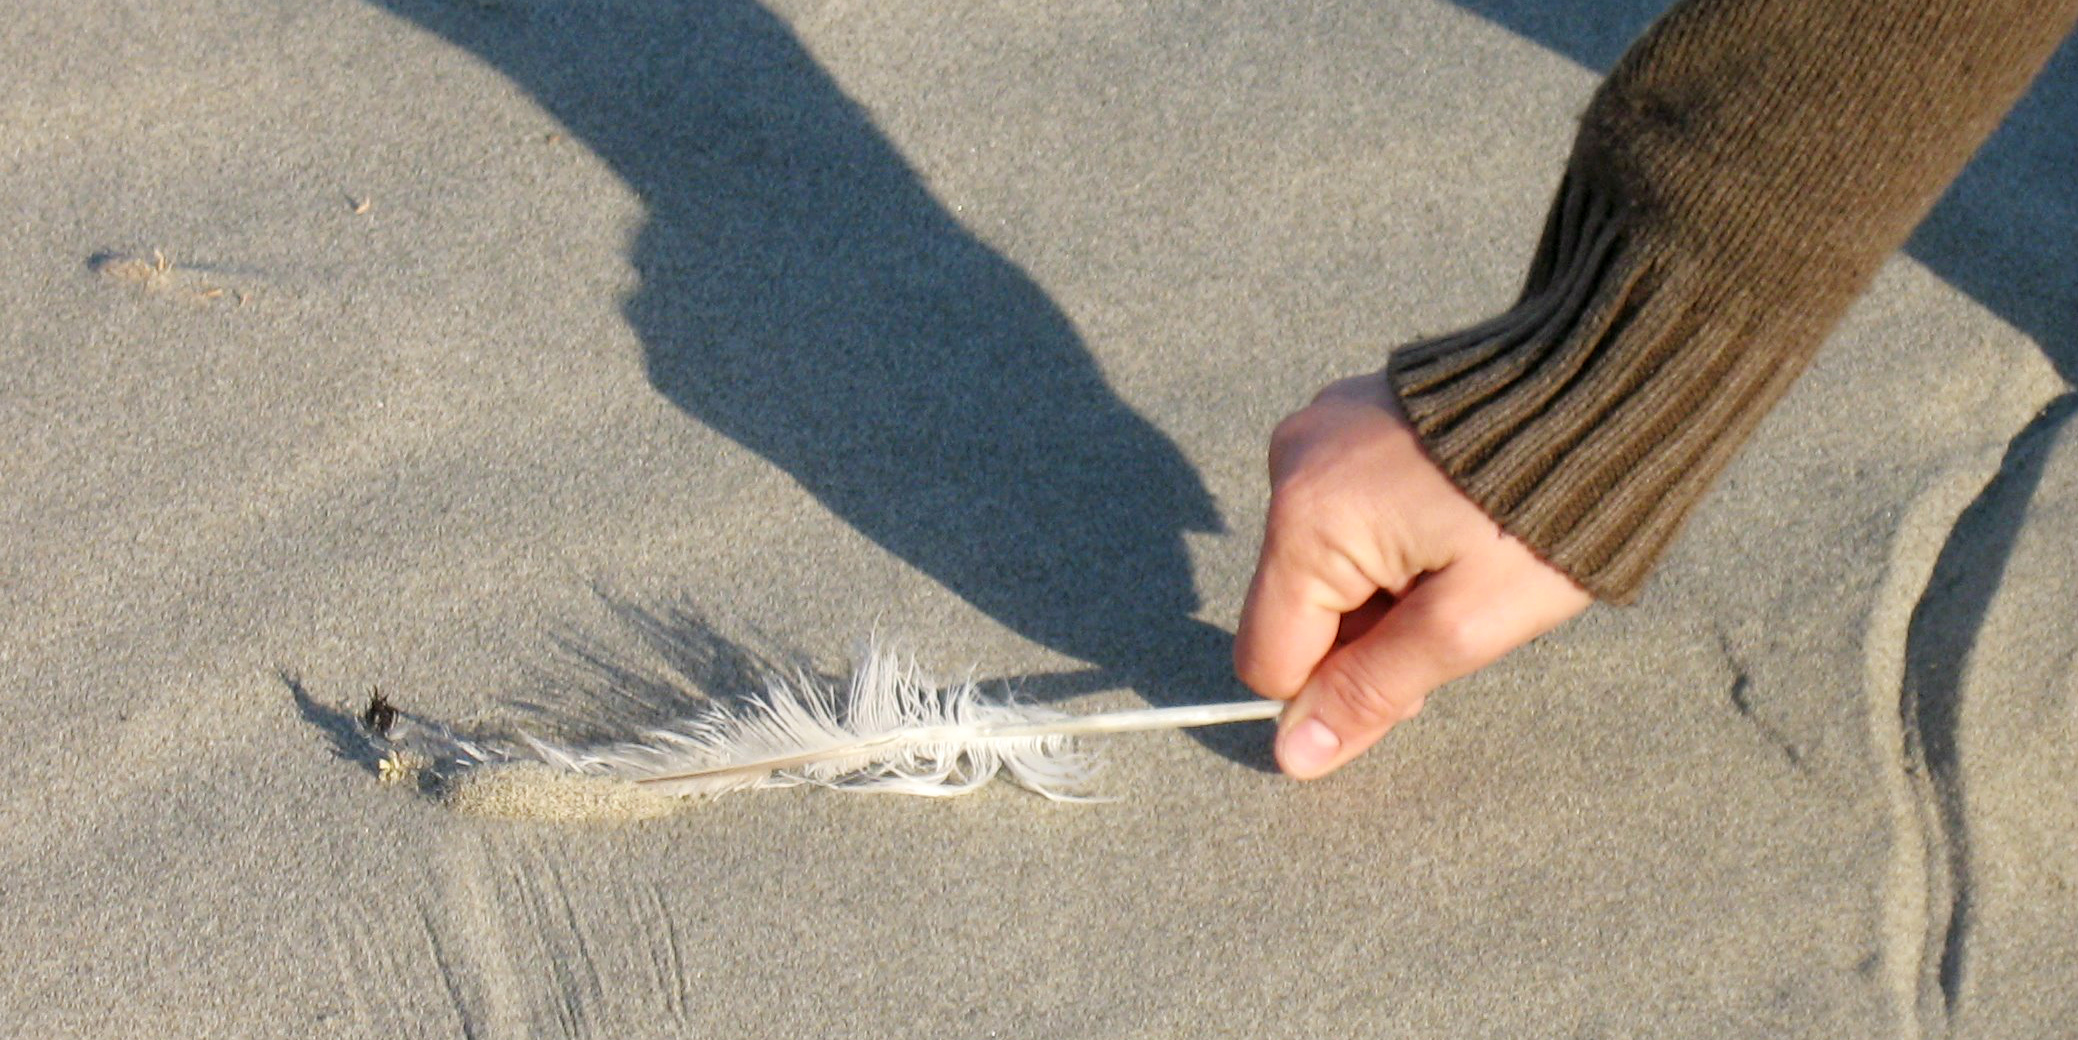 An individual bends down to collect a feather off of a beach | sustainable travel tips